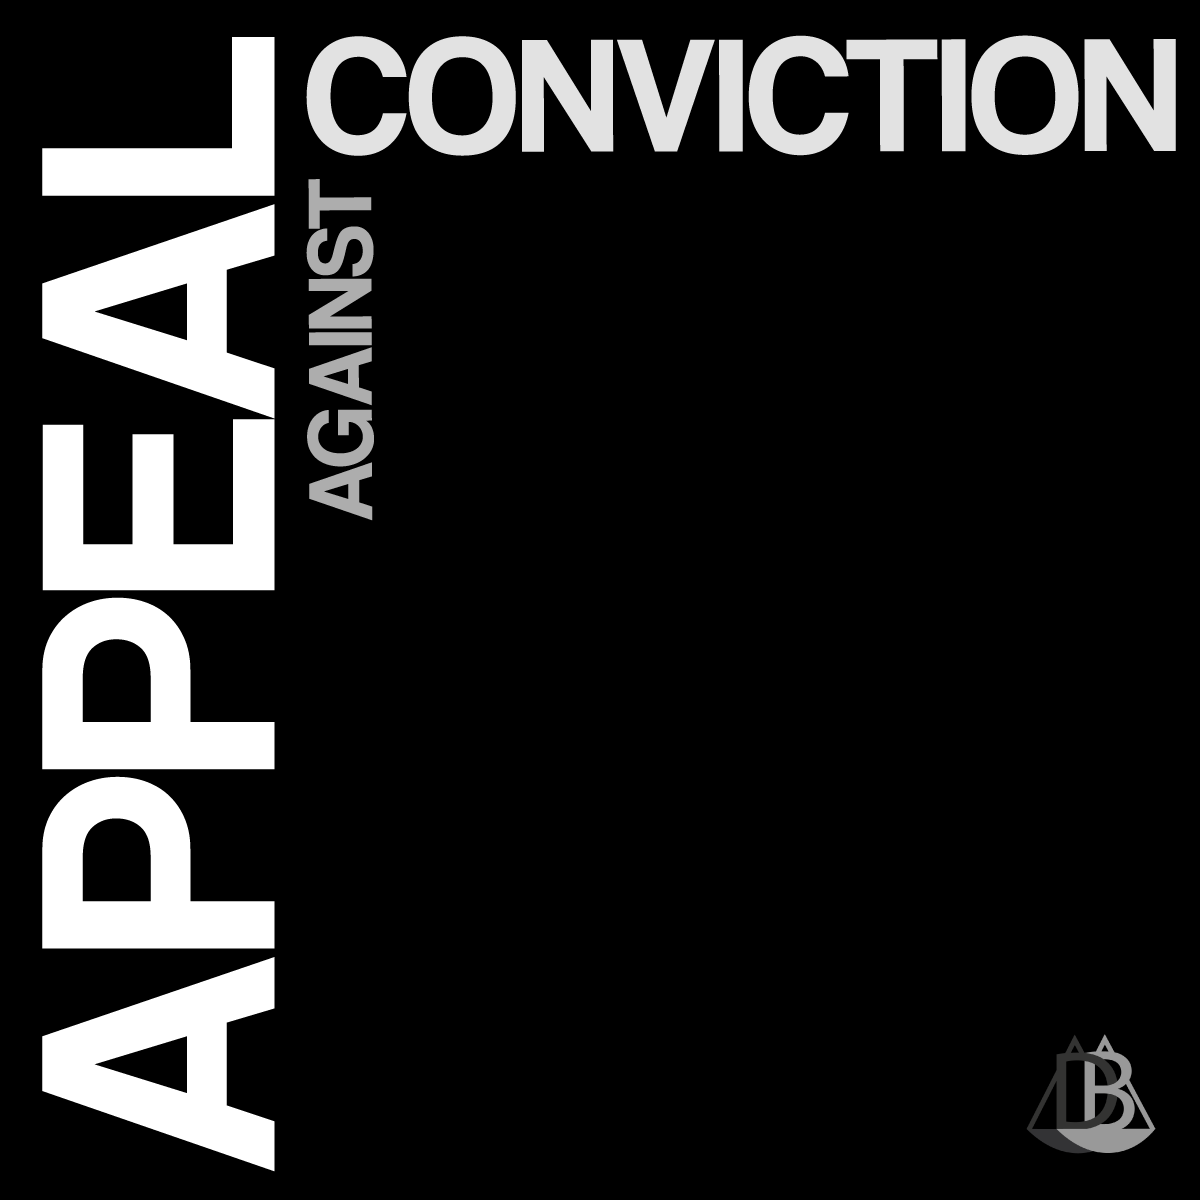 Appeal against Conviction